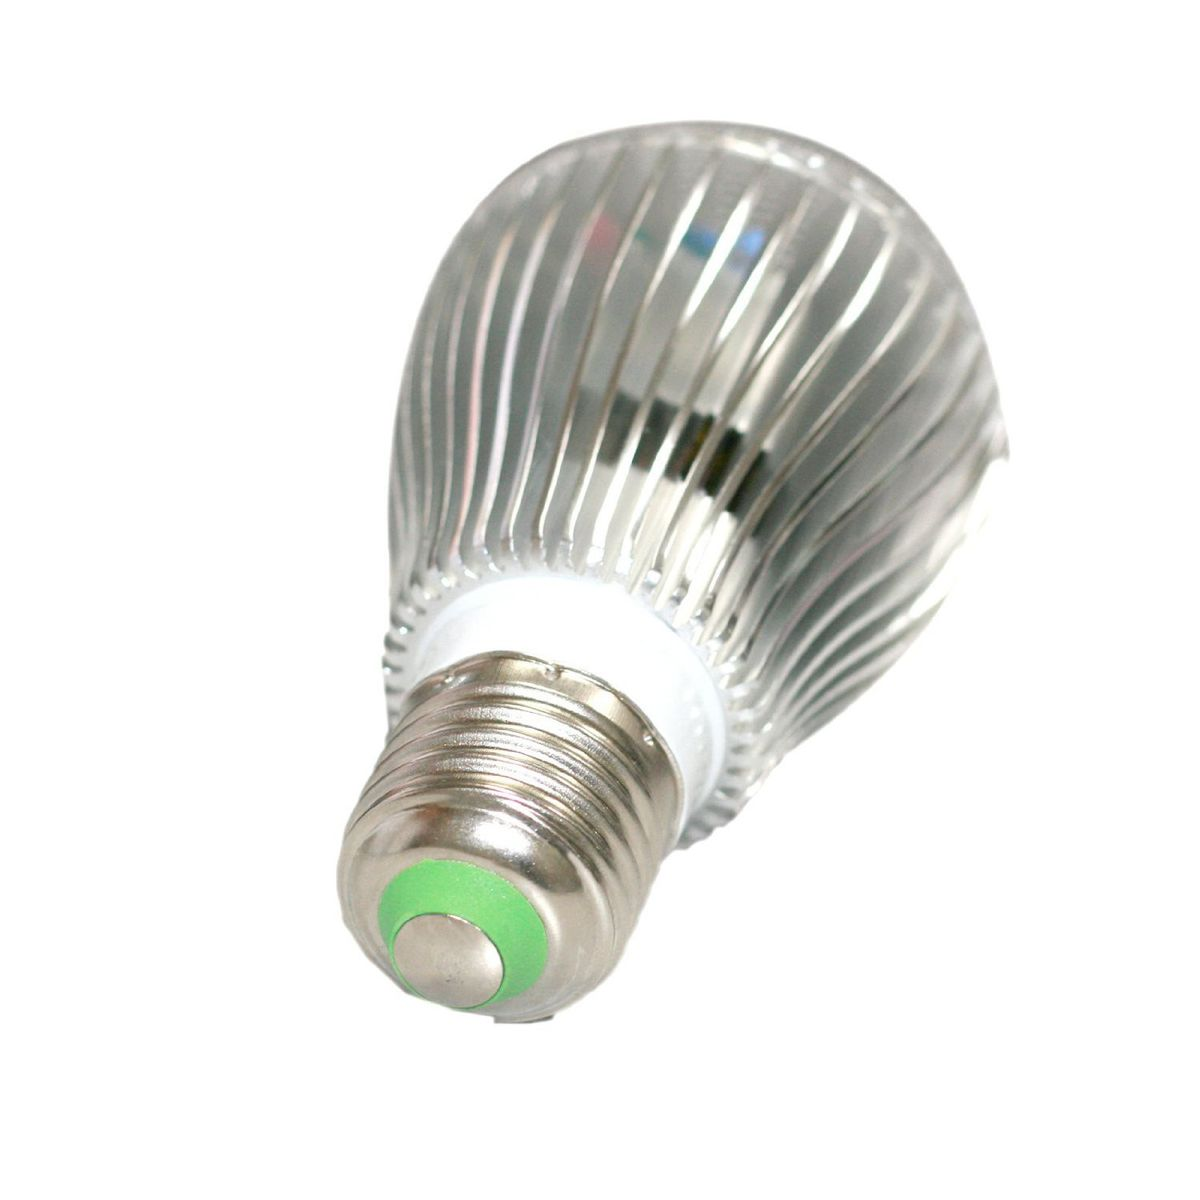 ... 9W E27 16 Color Changing RGB LED Light Bulbs With Remote Control  100 240V ...